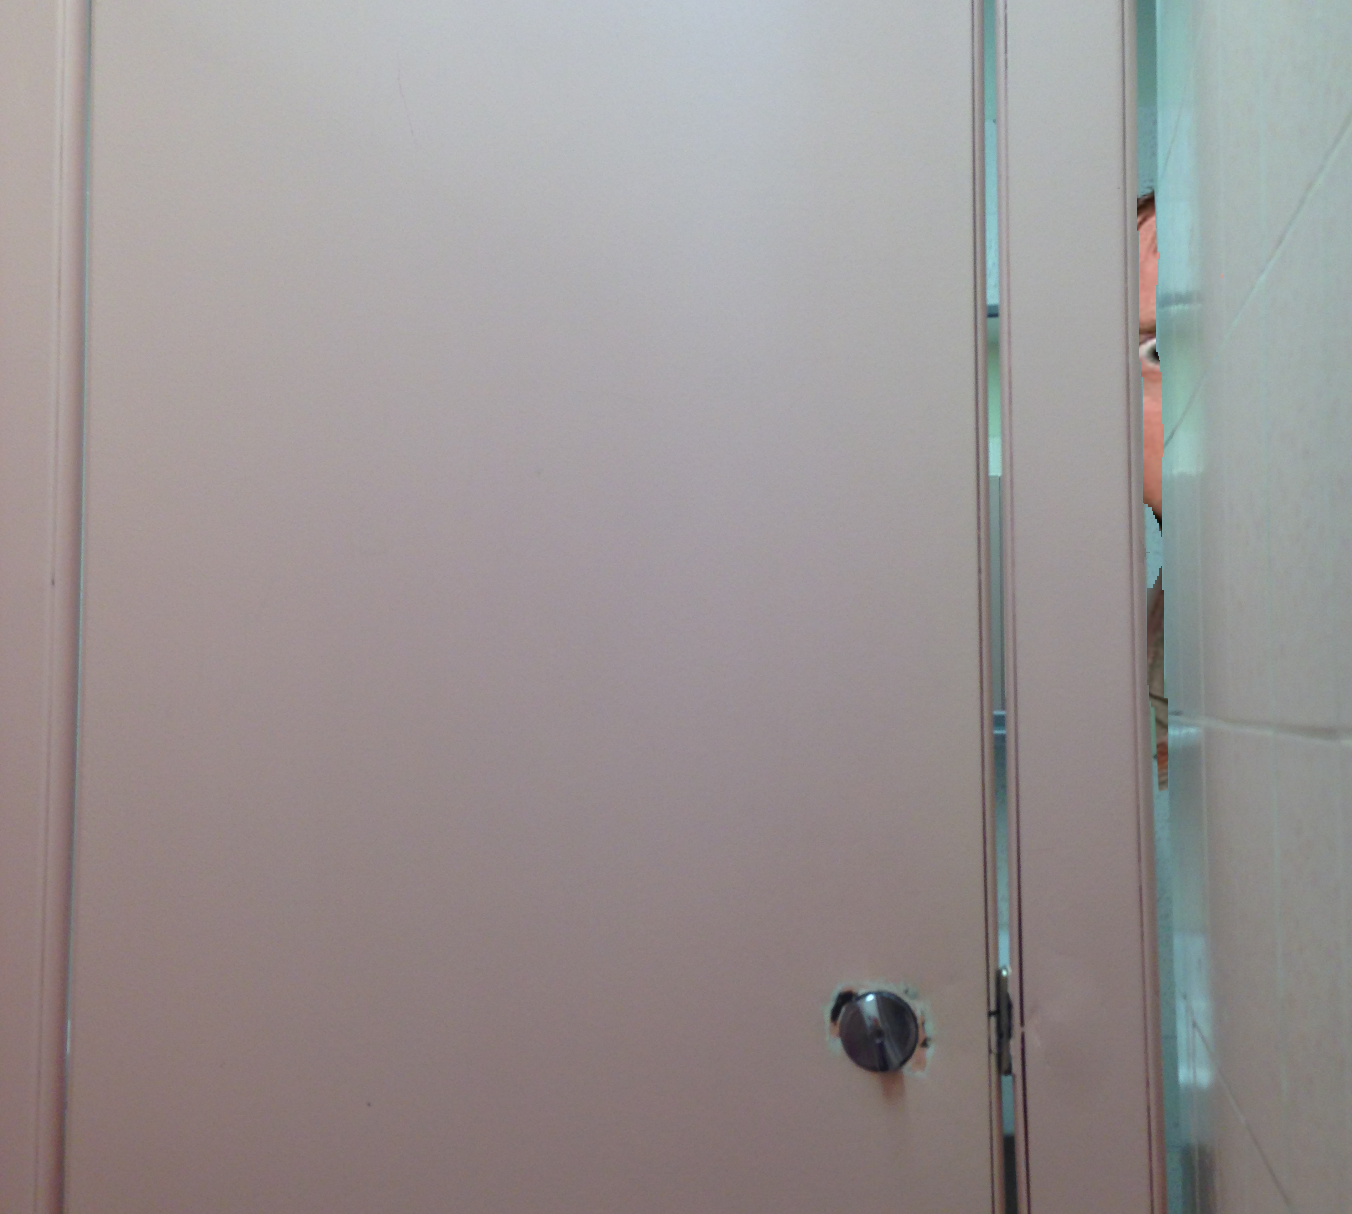 bathroom stall door. Bathroom Gap Stall Door